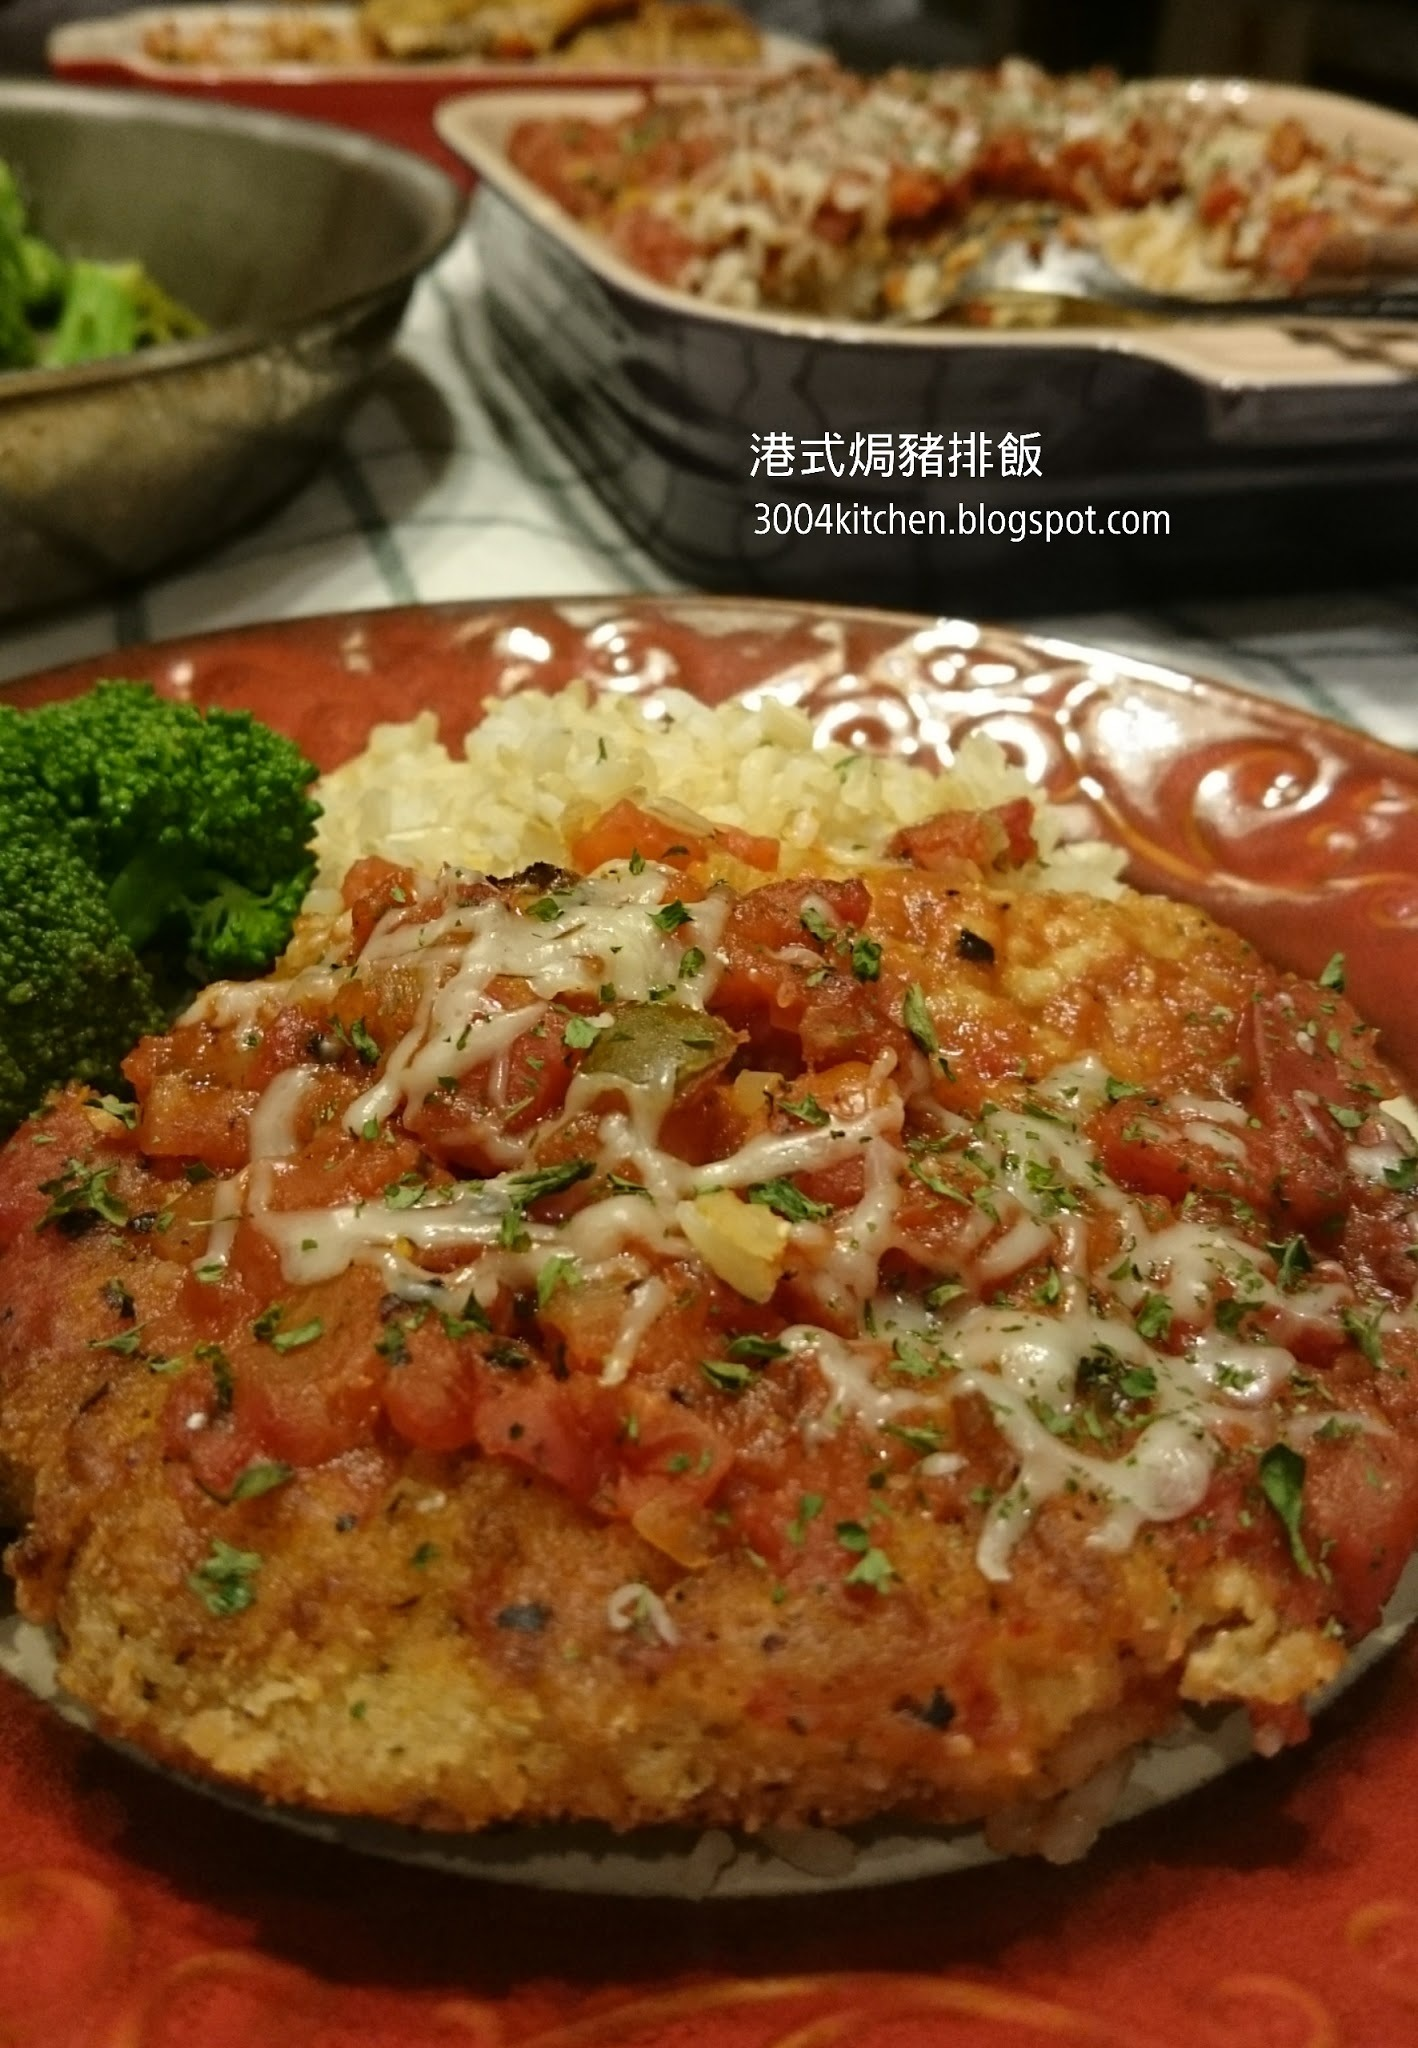 港式烤豬排飯 Bake Pork Chop Loin Rice in Tomato Sauce